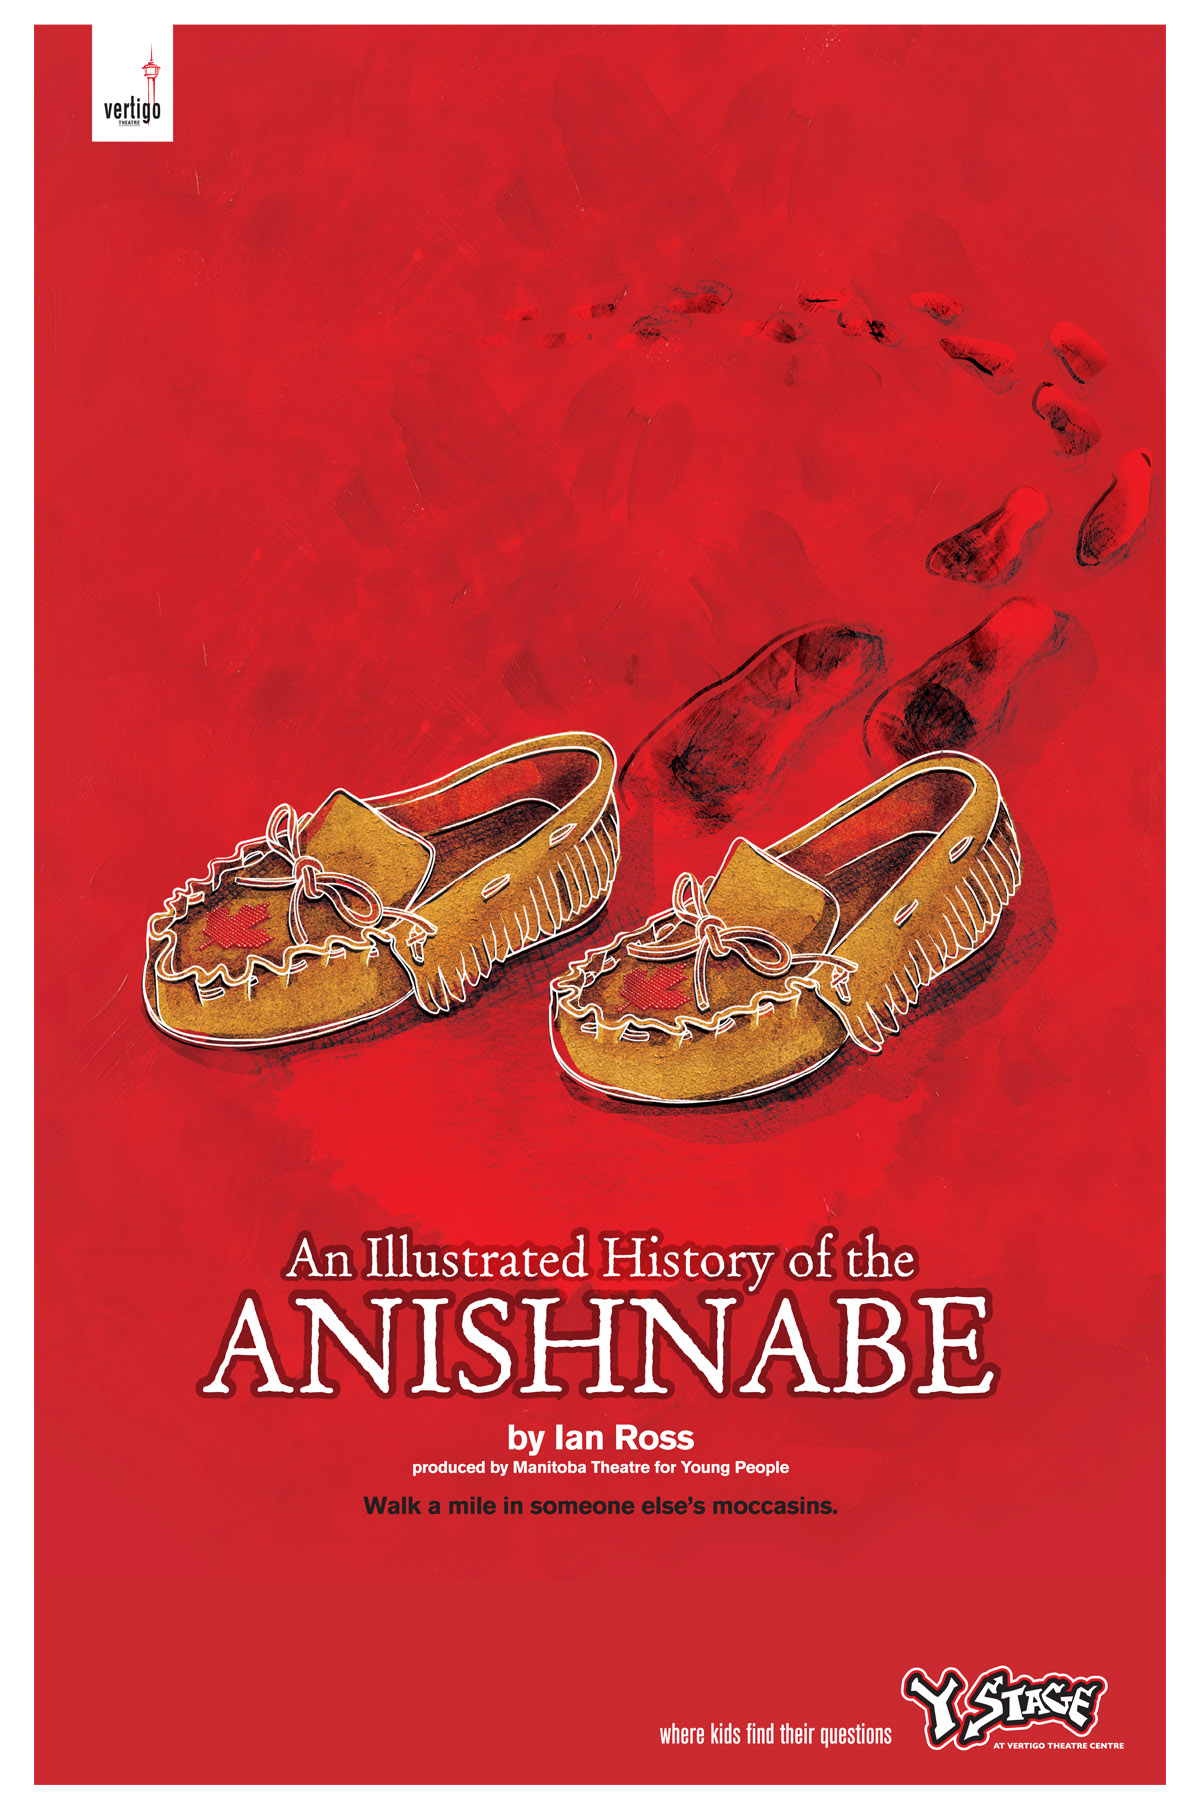 AN ILLUSTRATED HISTORY OF THE ANISHNABE